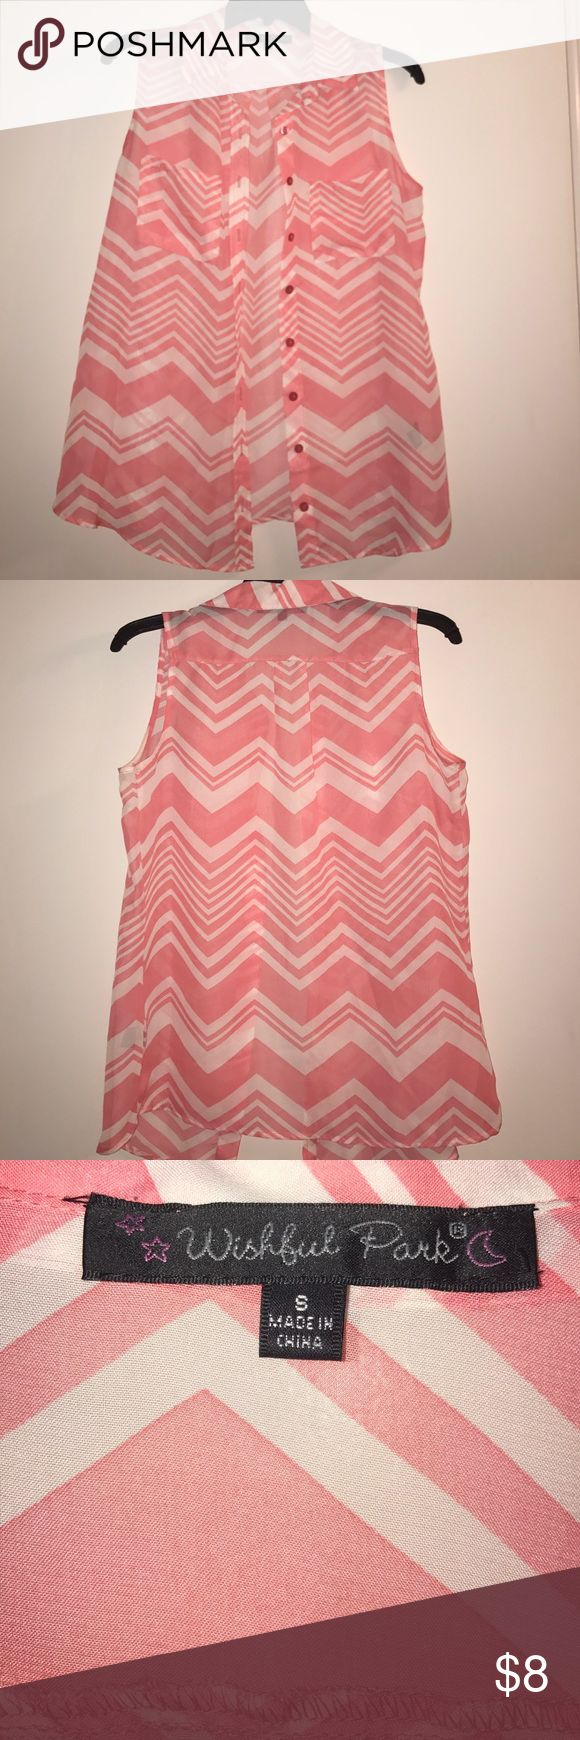 Small Sheer Chevron Top Coral and white sheer chevron top. Only worn once! Wishful Park Tops Blouses